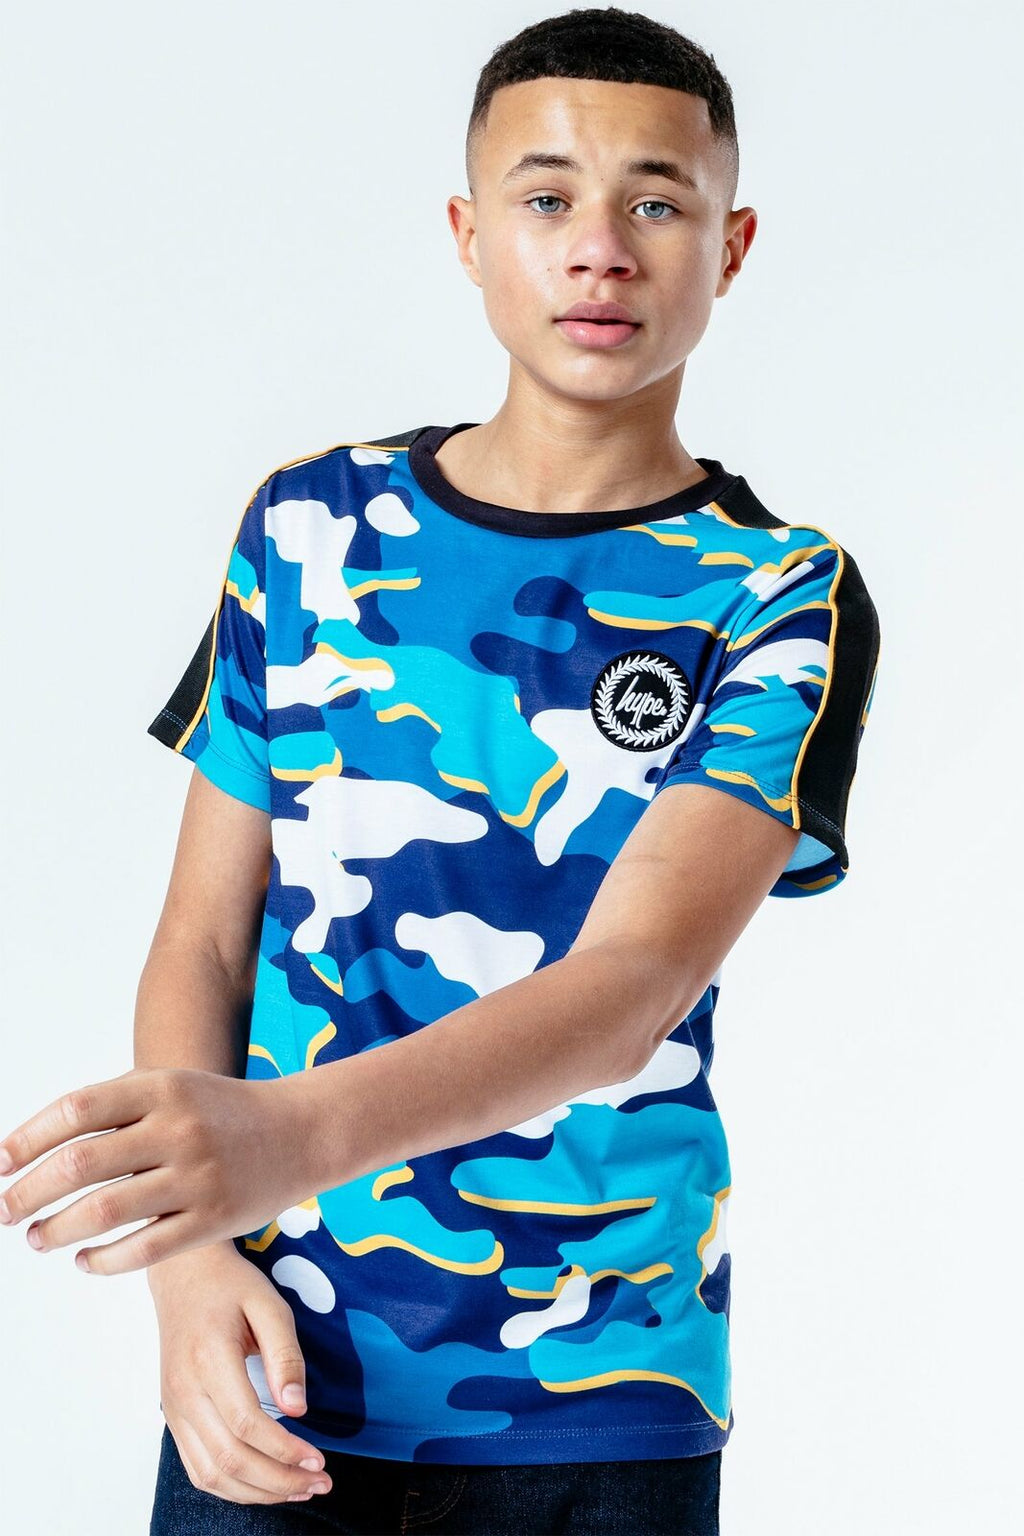 Blueline Camo Kids T-Shirt